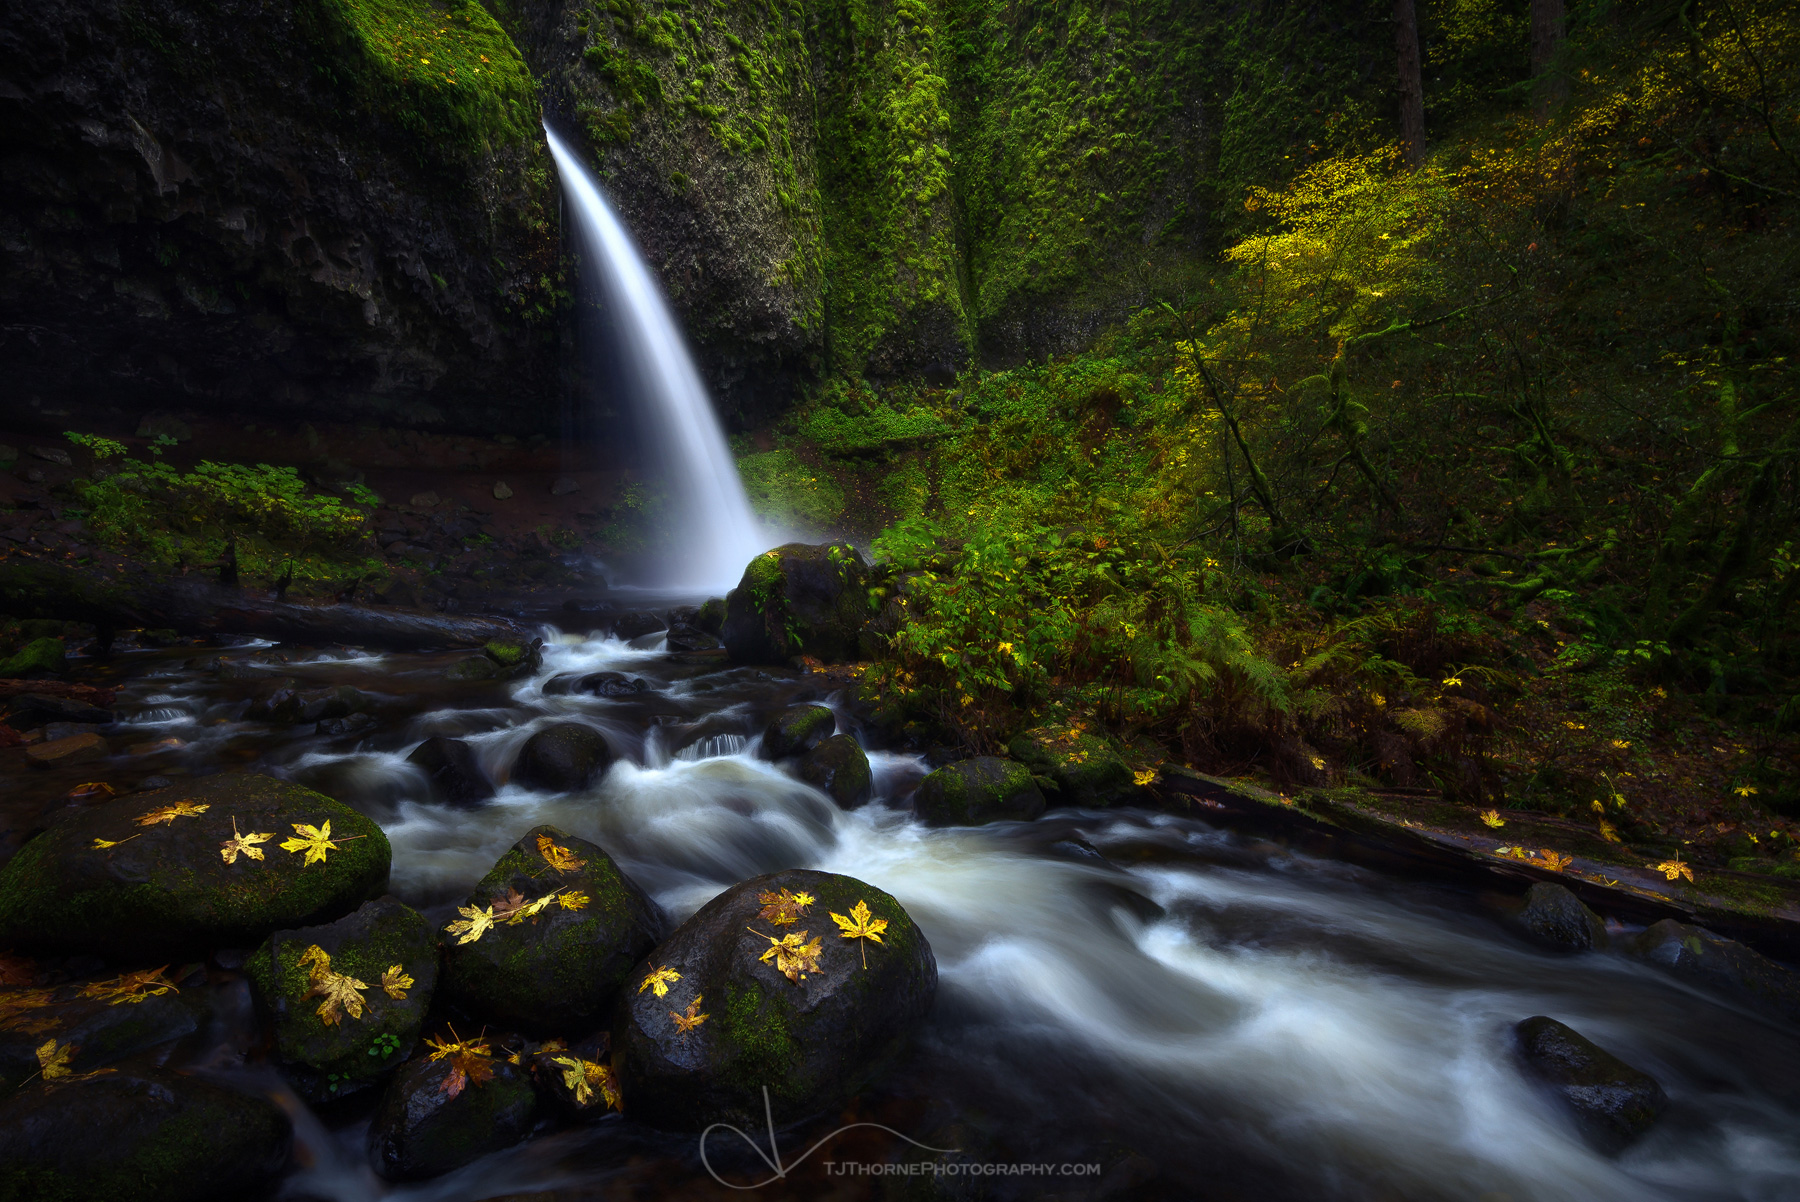 Interview with American Landscape Photographer TJ Thorne